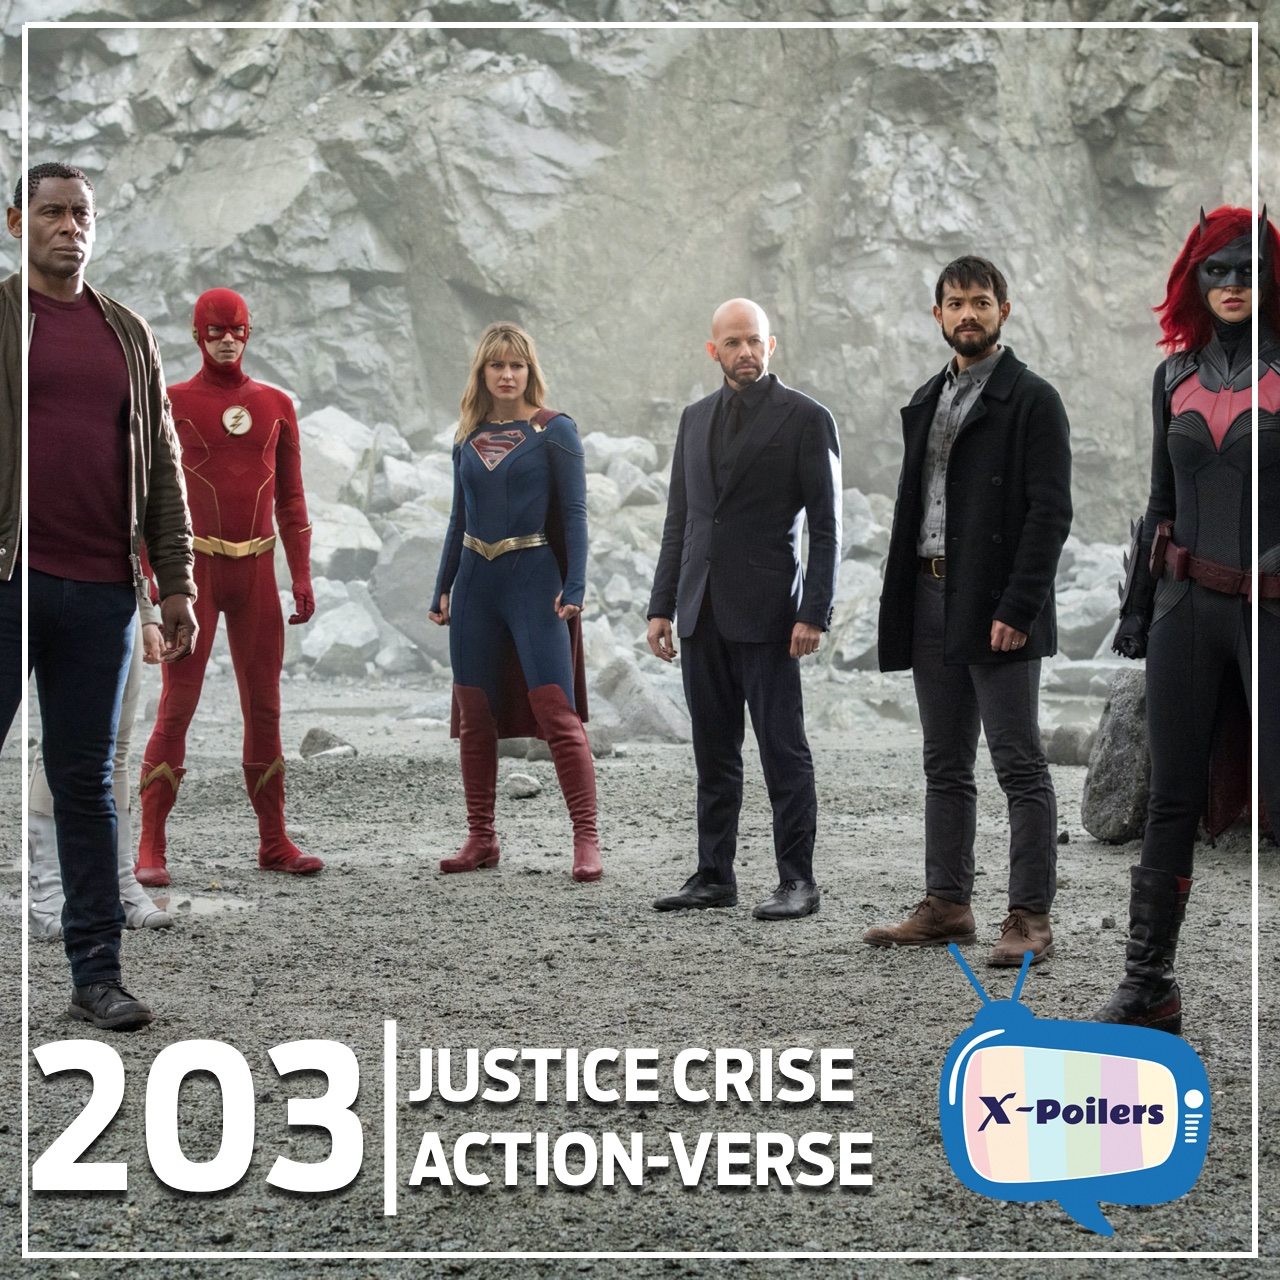 Justice Crise Action-Verse